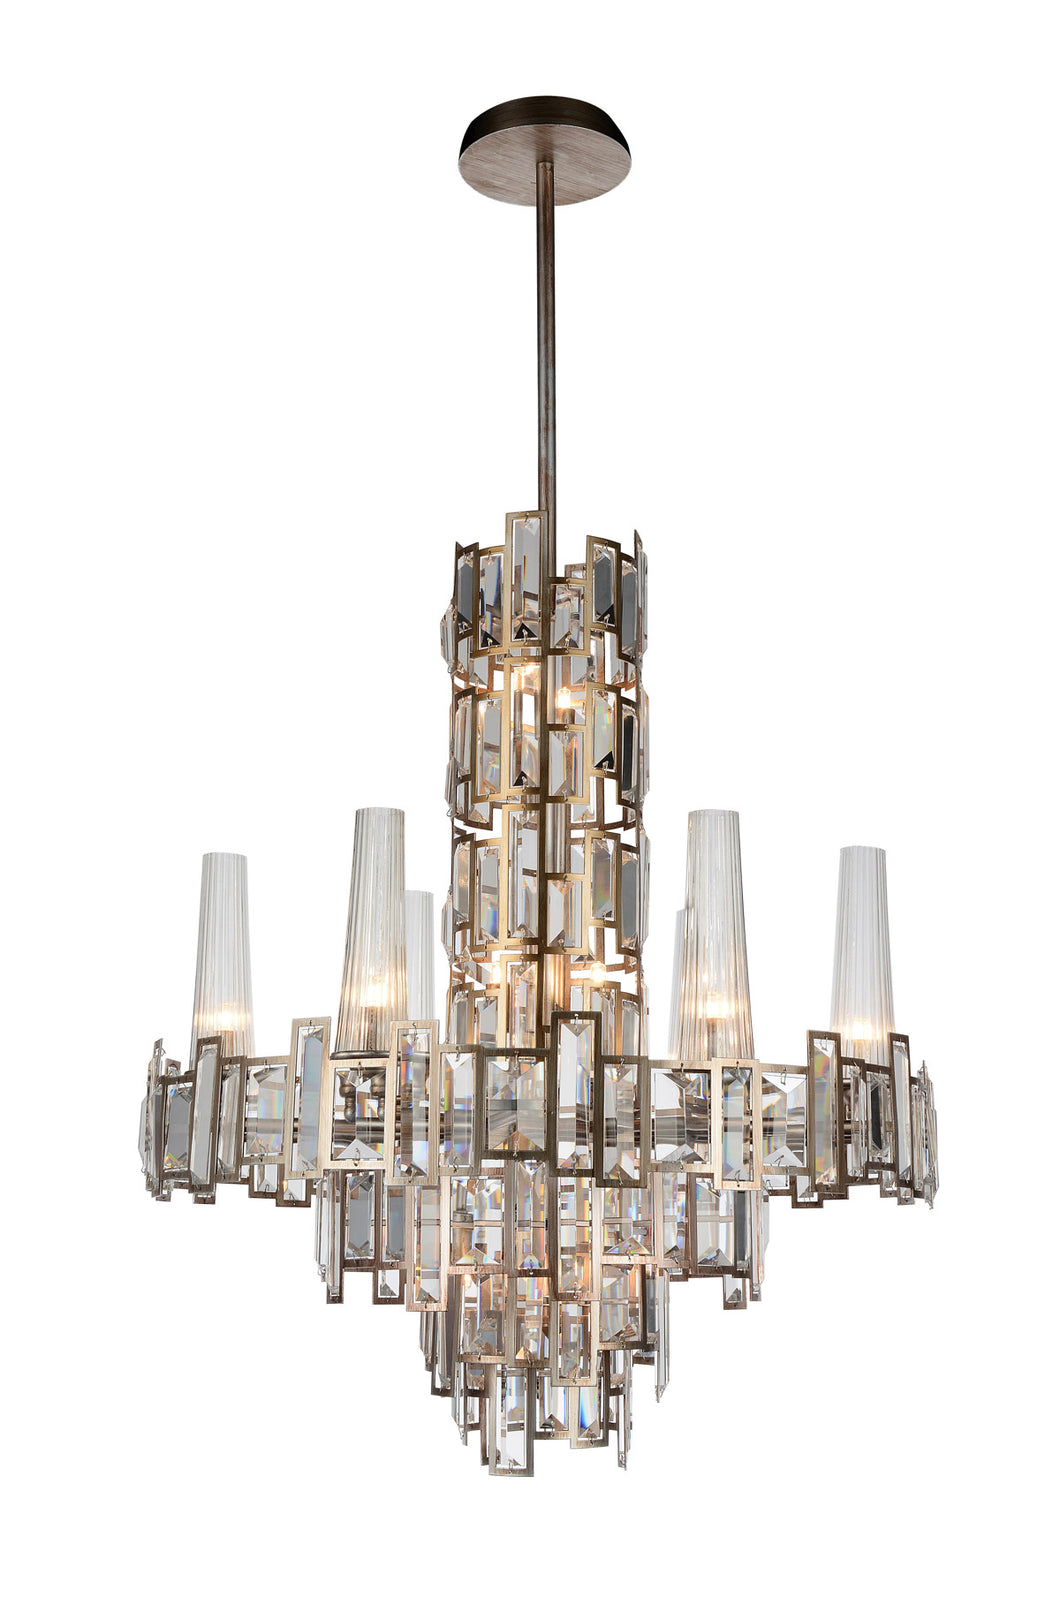 12 Light Down Chandelier with Champagne finish